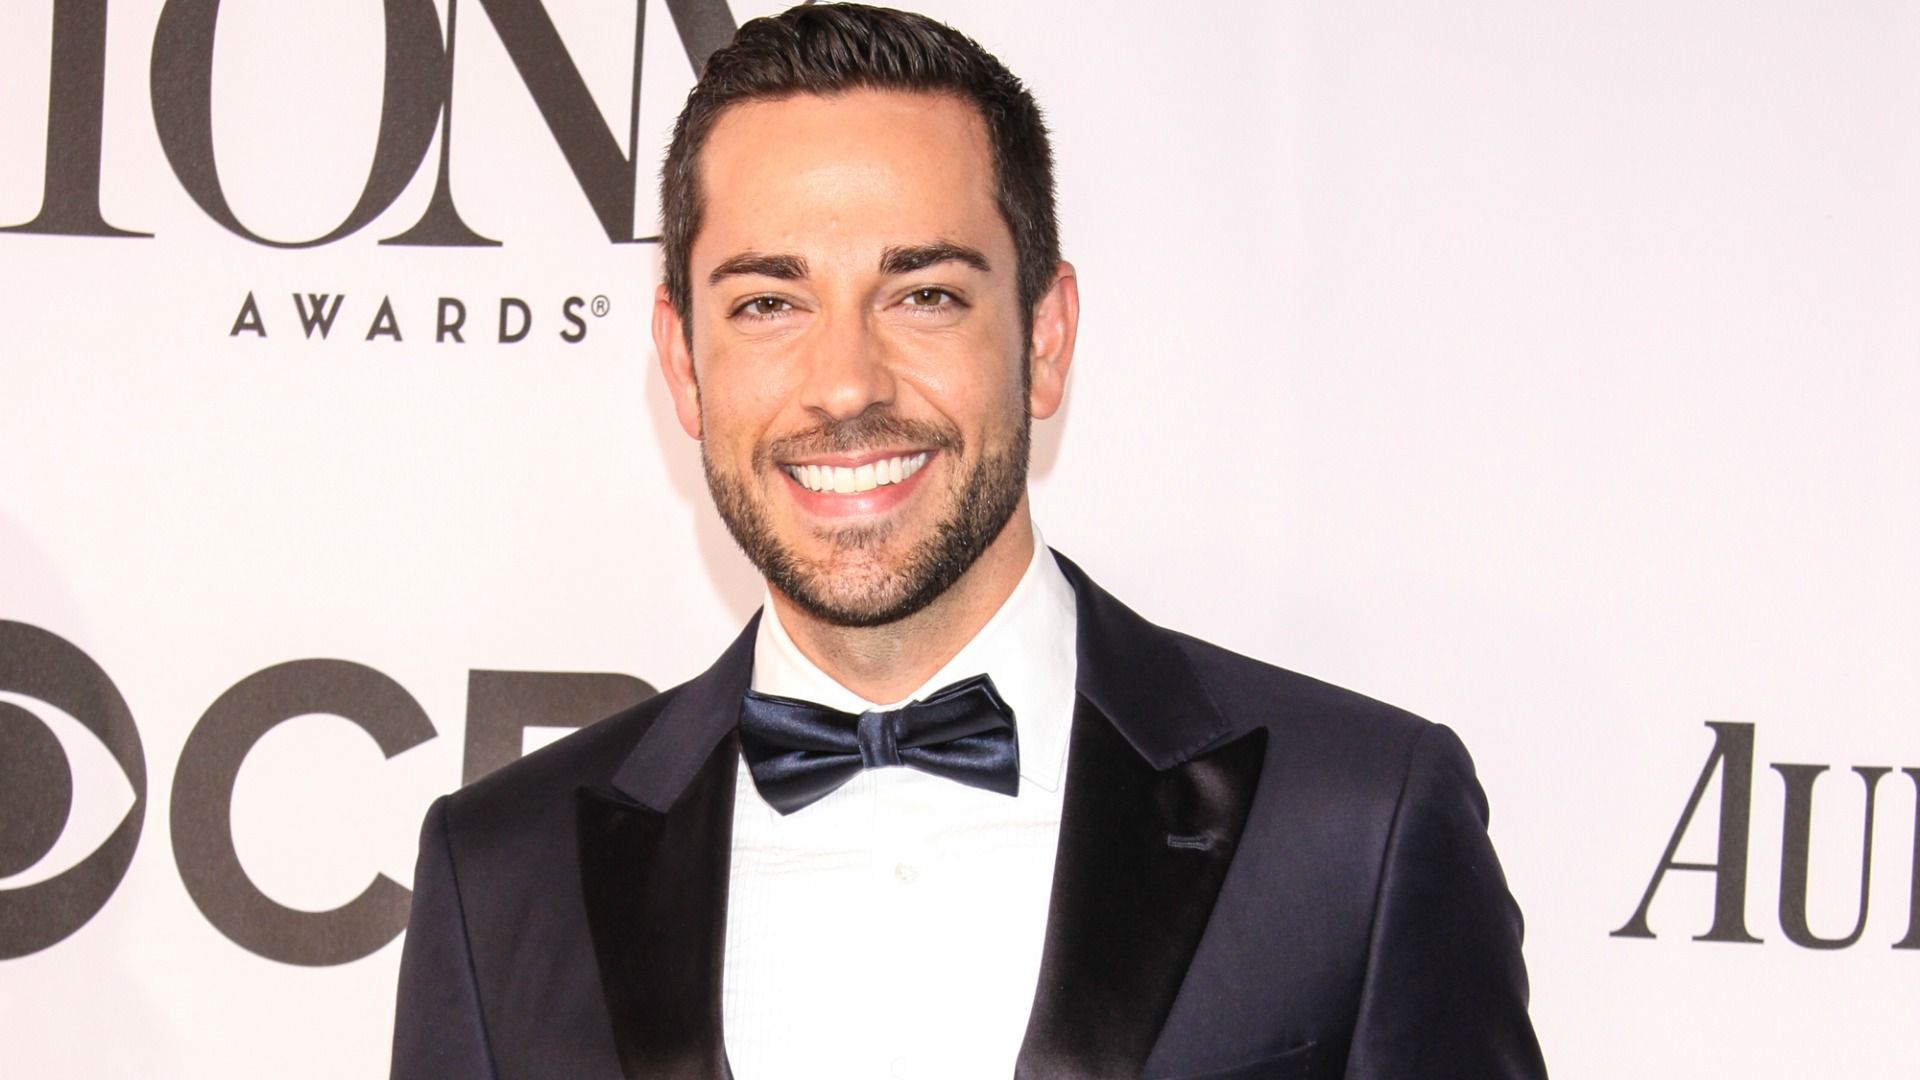 Has Zachary Levi found the one?